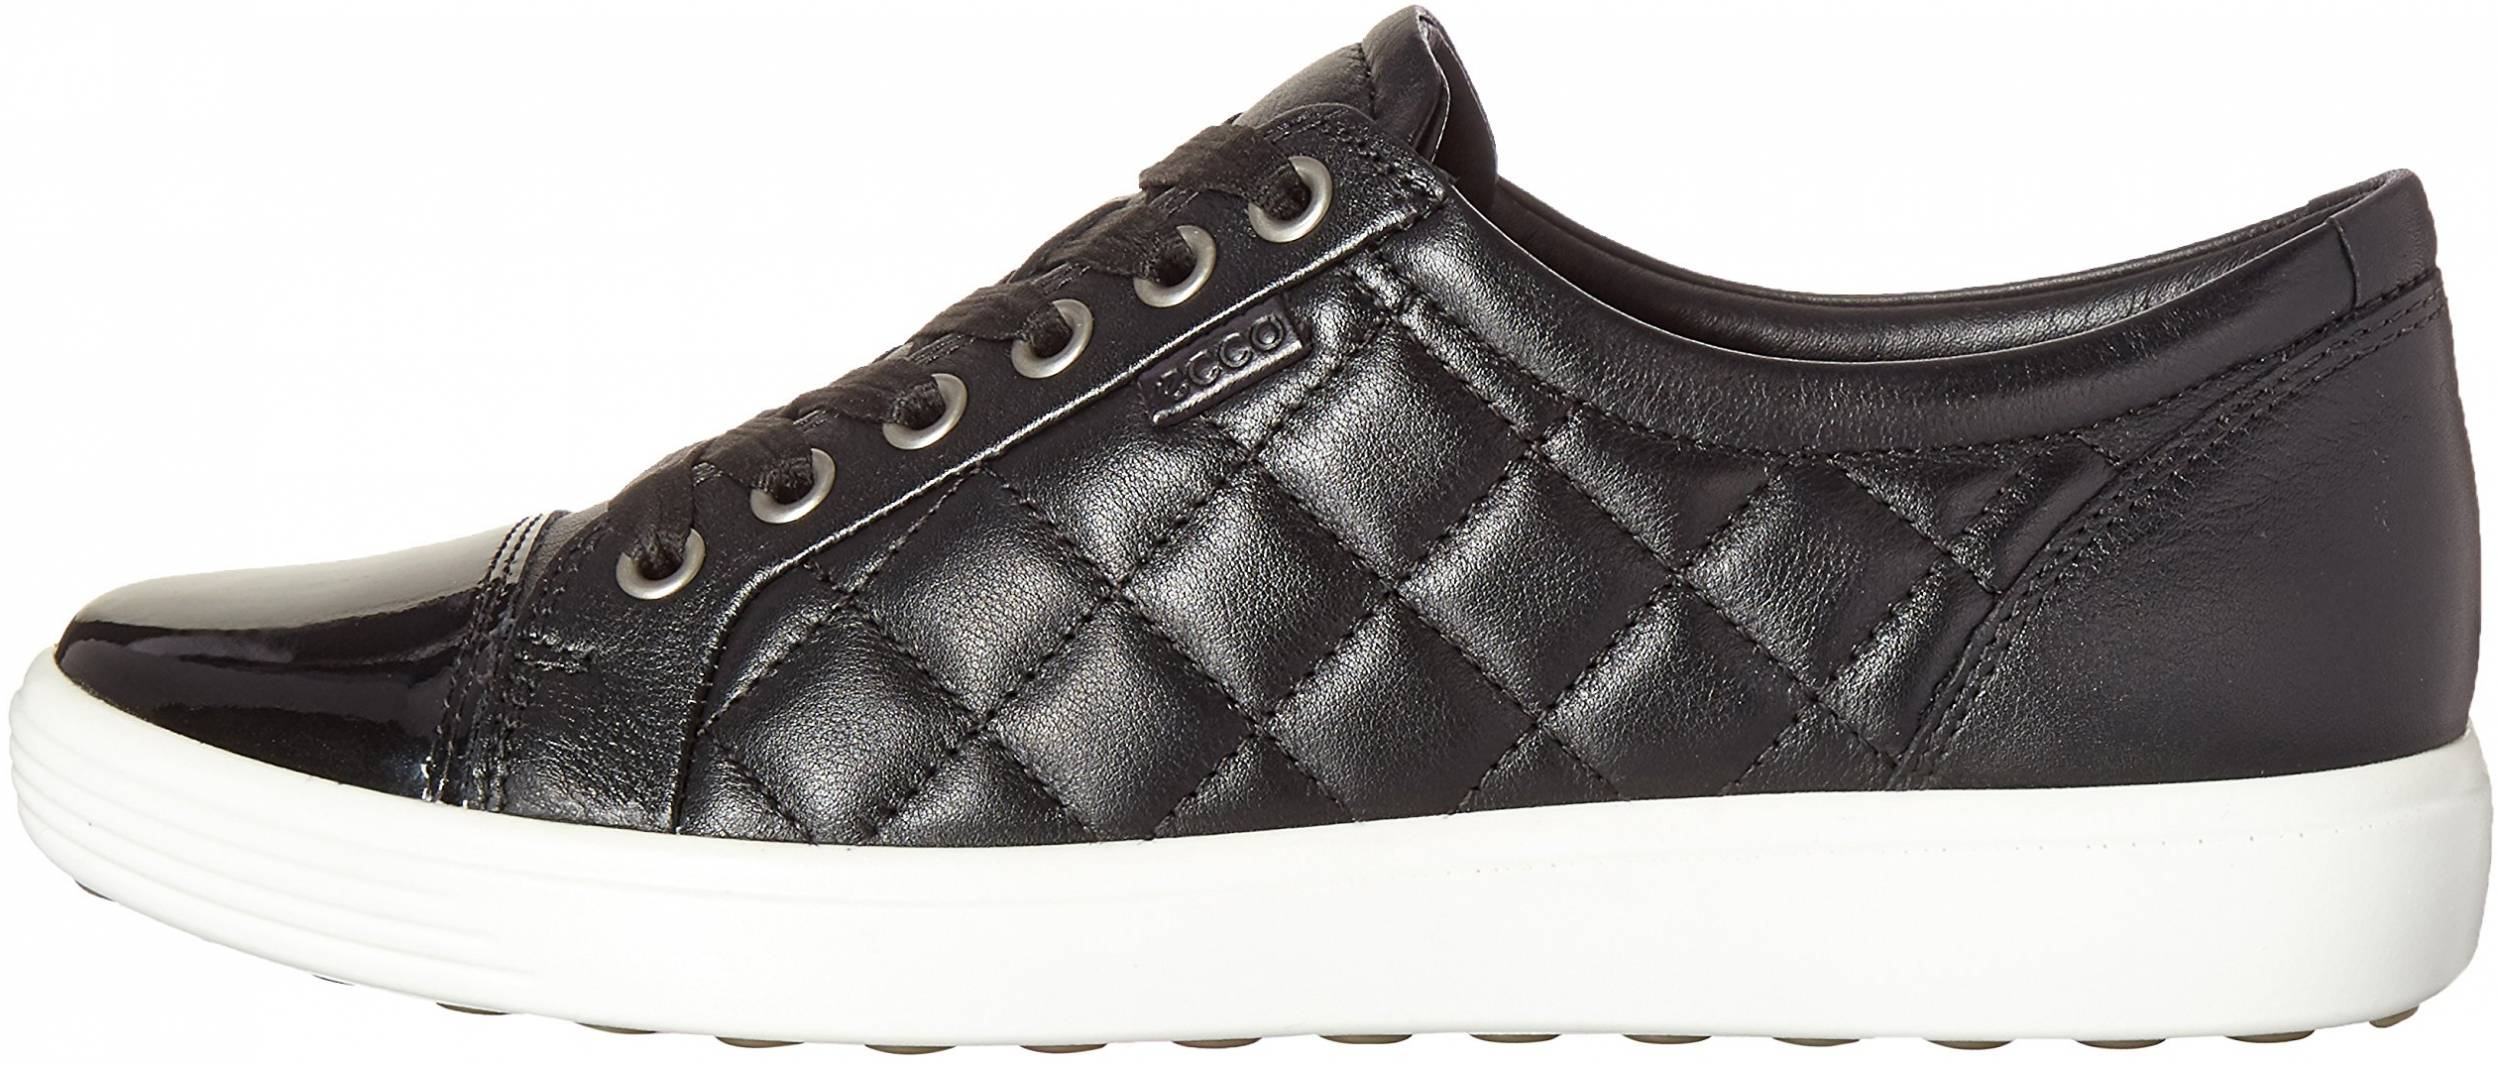 Ecco Soft 7 Quilted Tie